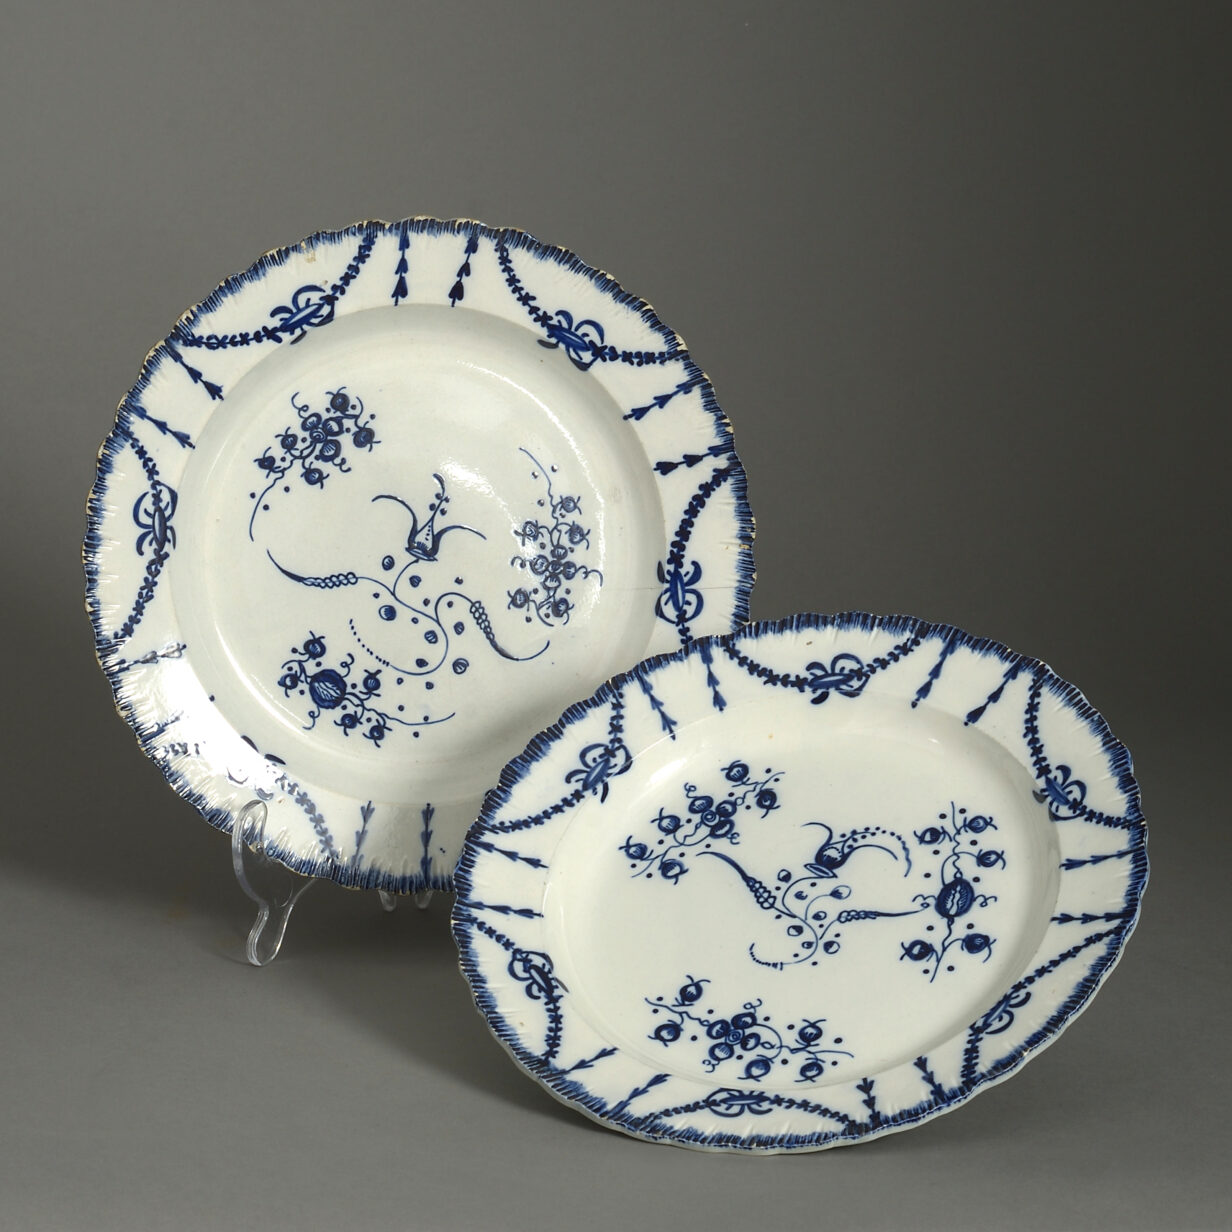 Pair of Staffordshire Blue and White Pottery Plates